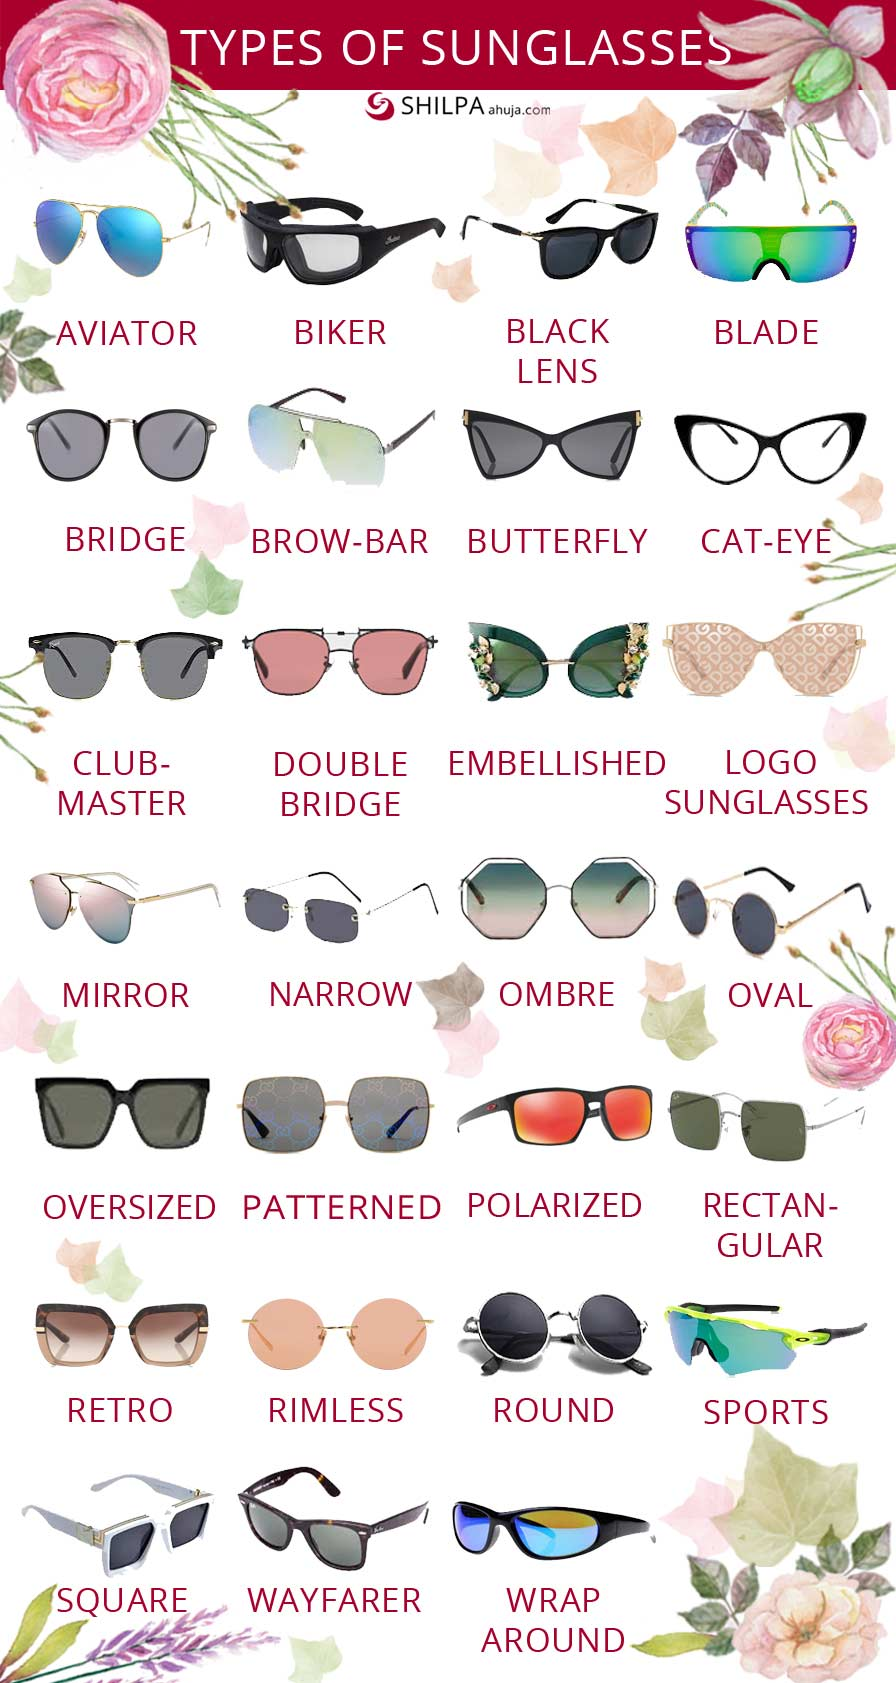 different-types-of-sunglasses fashion-words-glossary-dictionary-terms-infographic